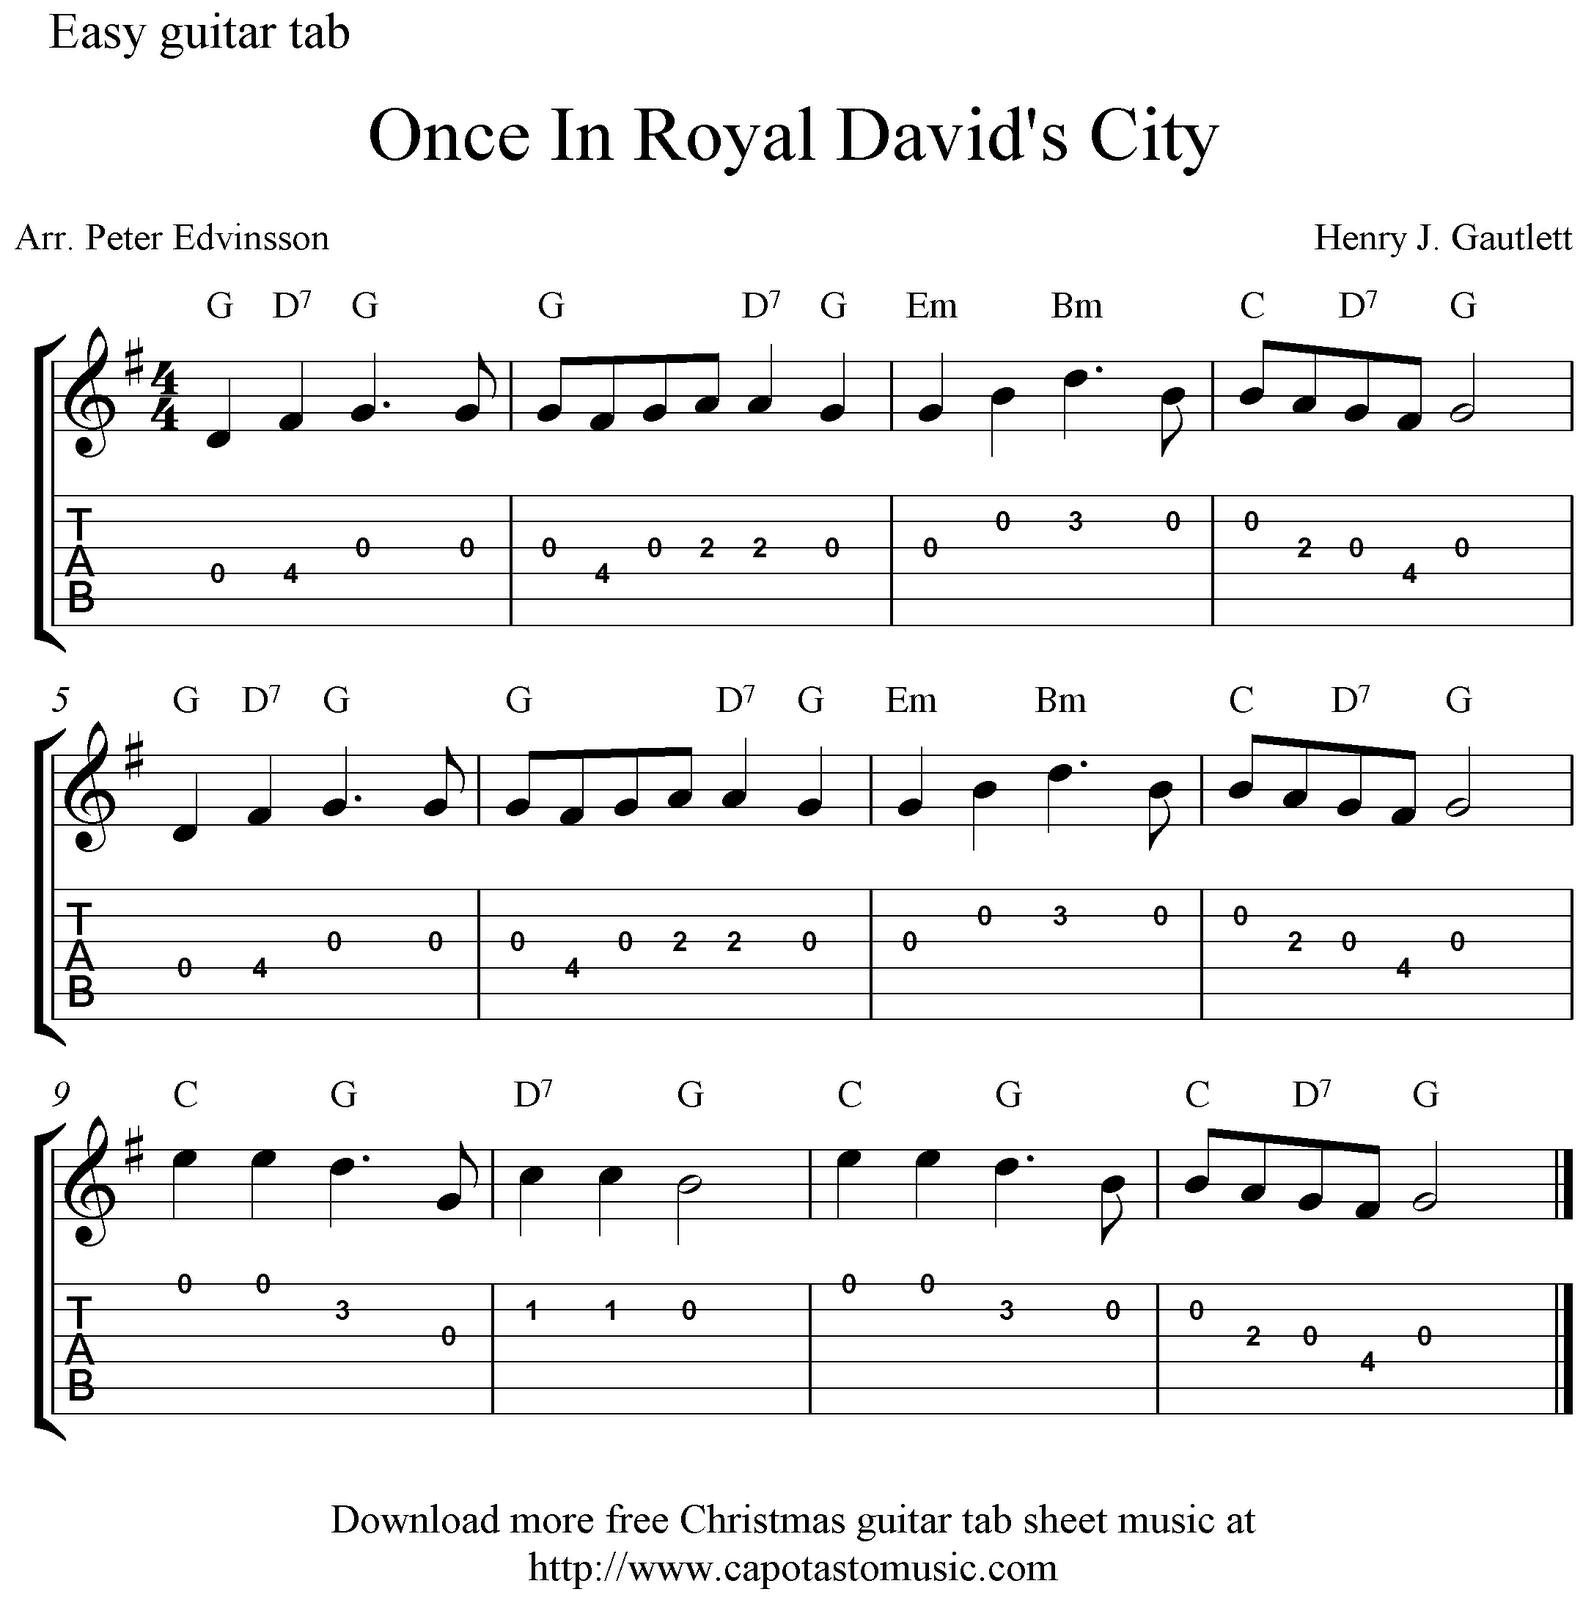 Free easy christmas guitar tab sheet music once in royal davids city hexwebz Choice Image